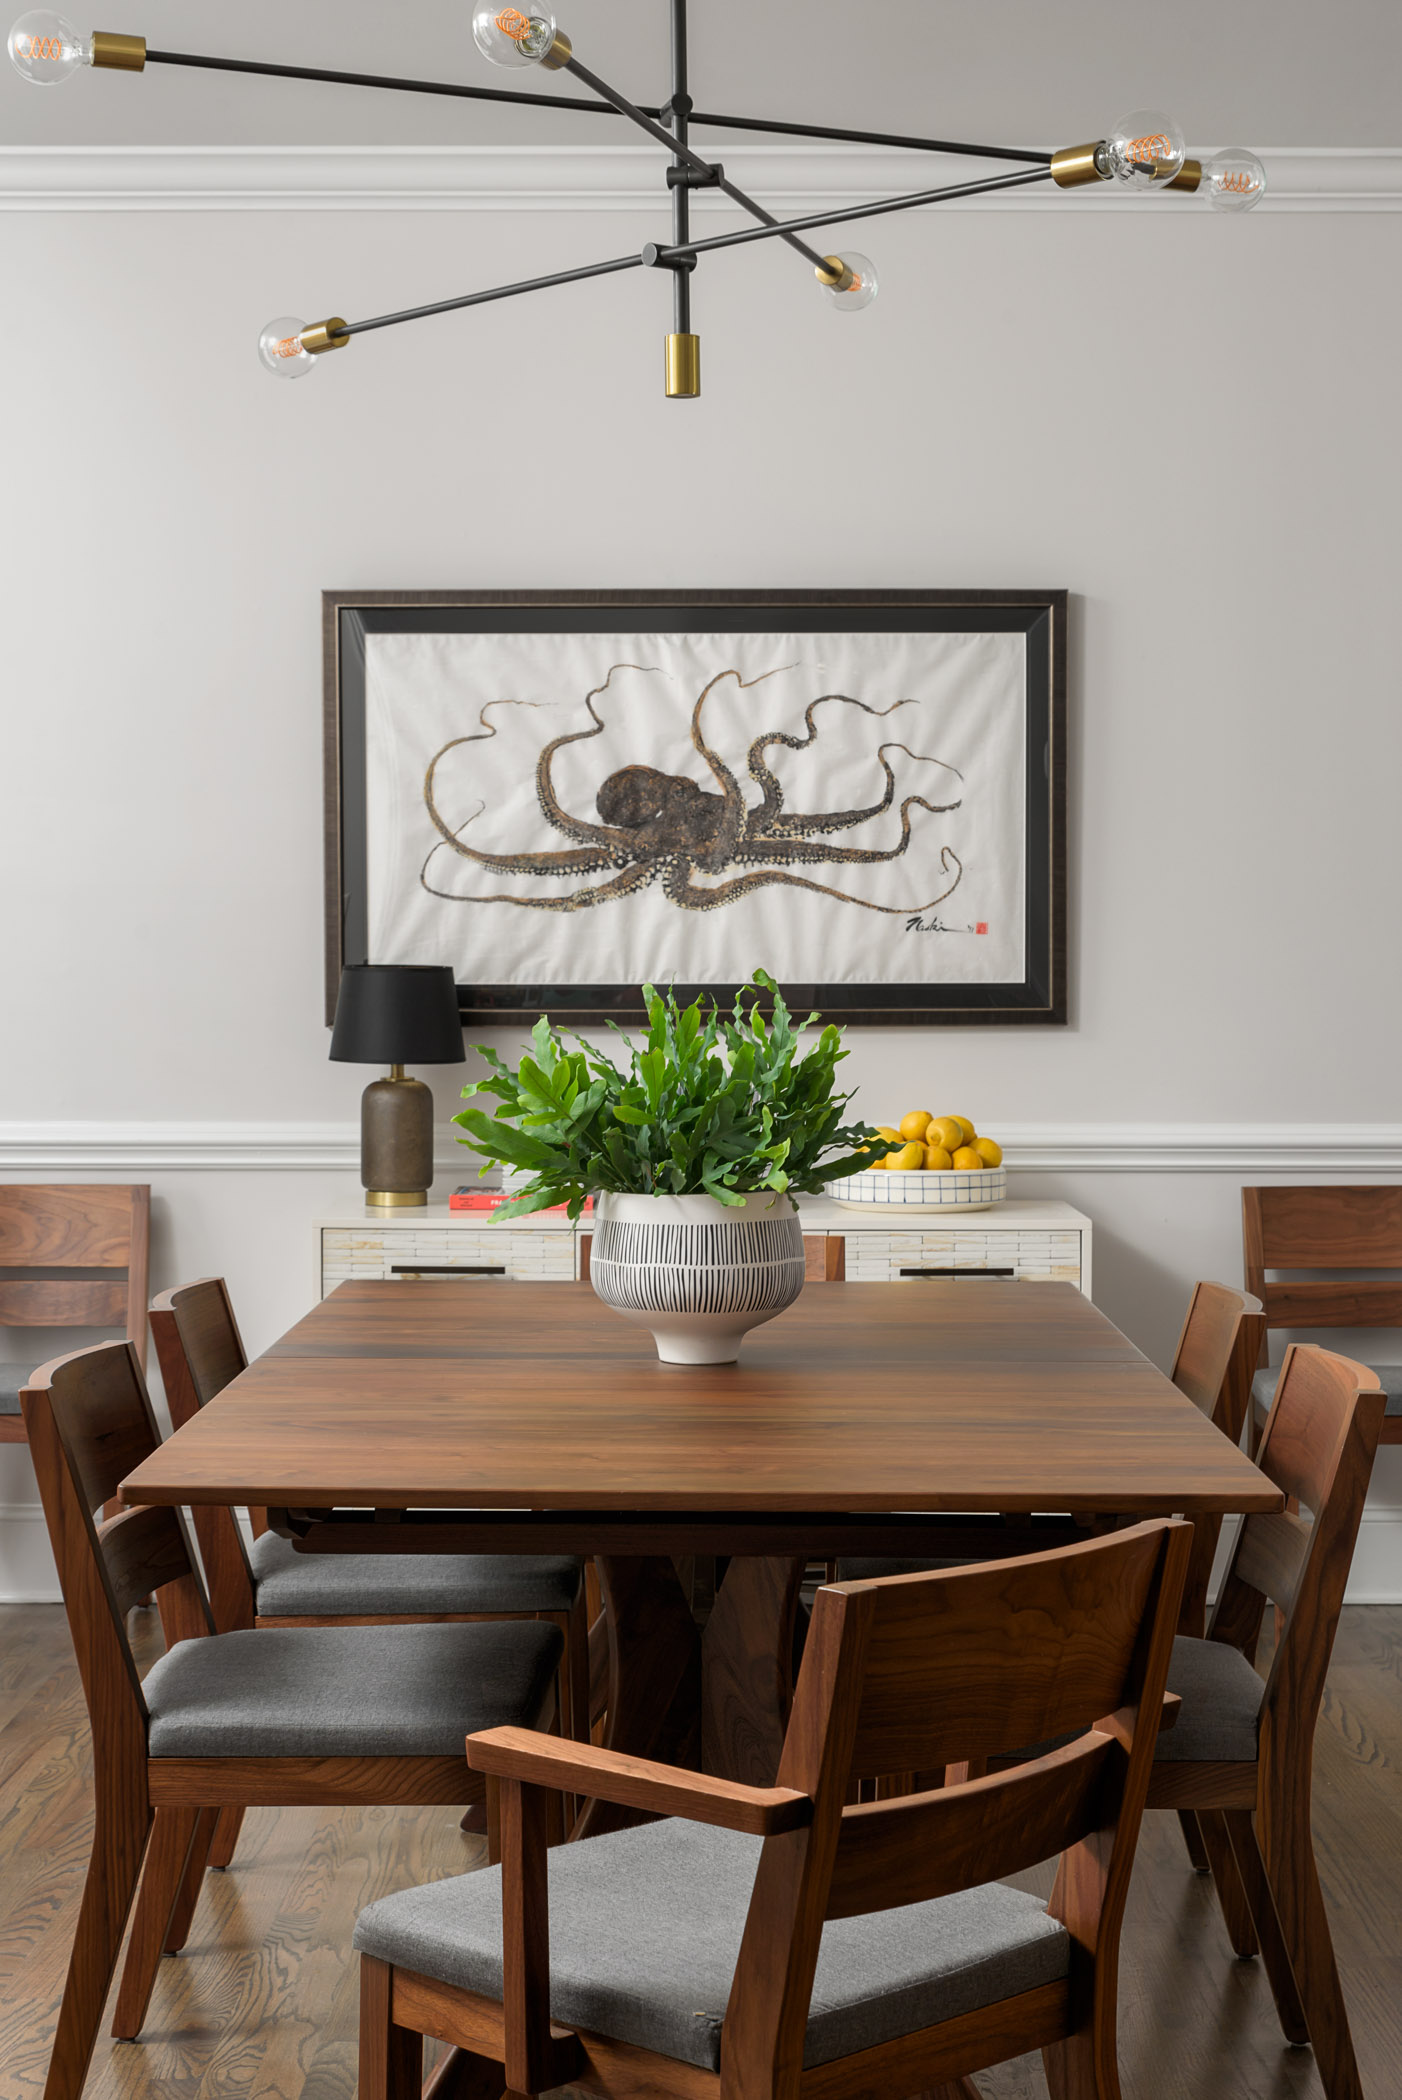 A sculptural mid-century inspired chandelier floats above a walnut dining table and chairs.